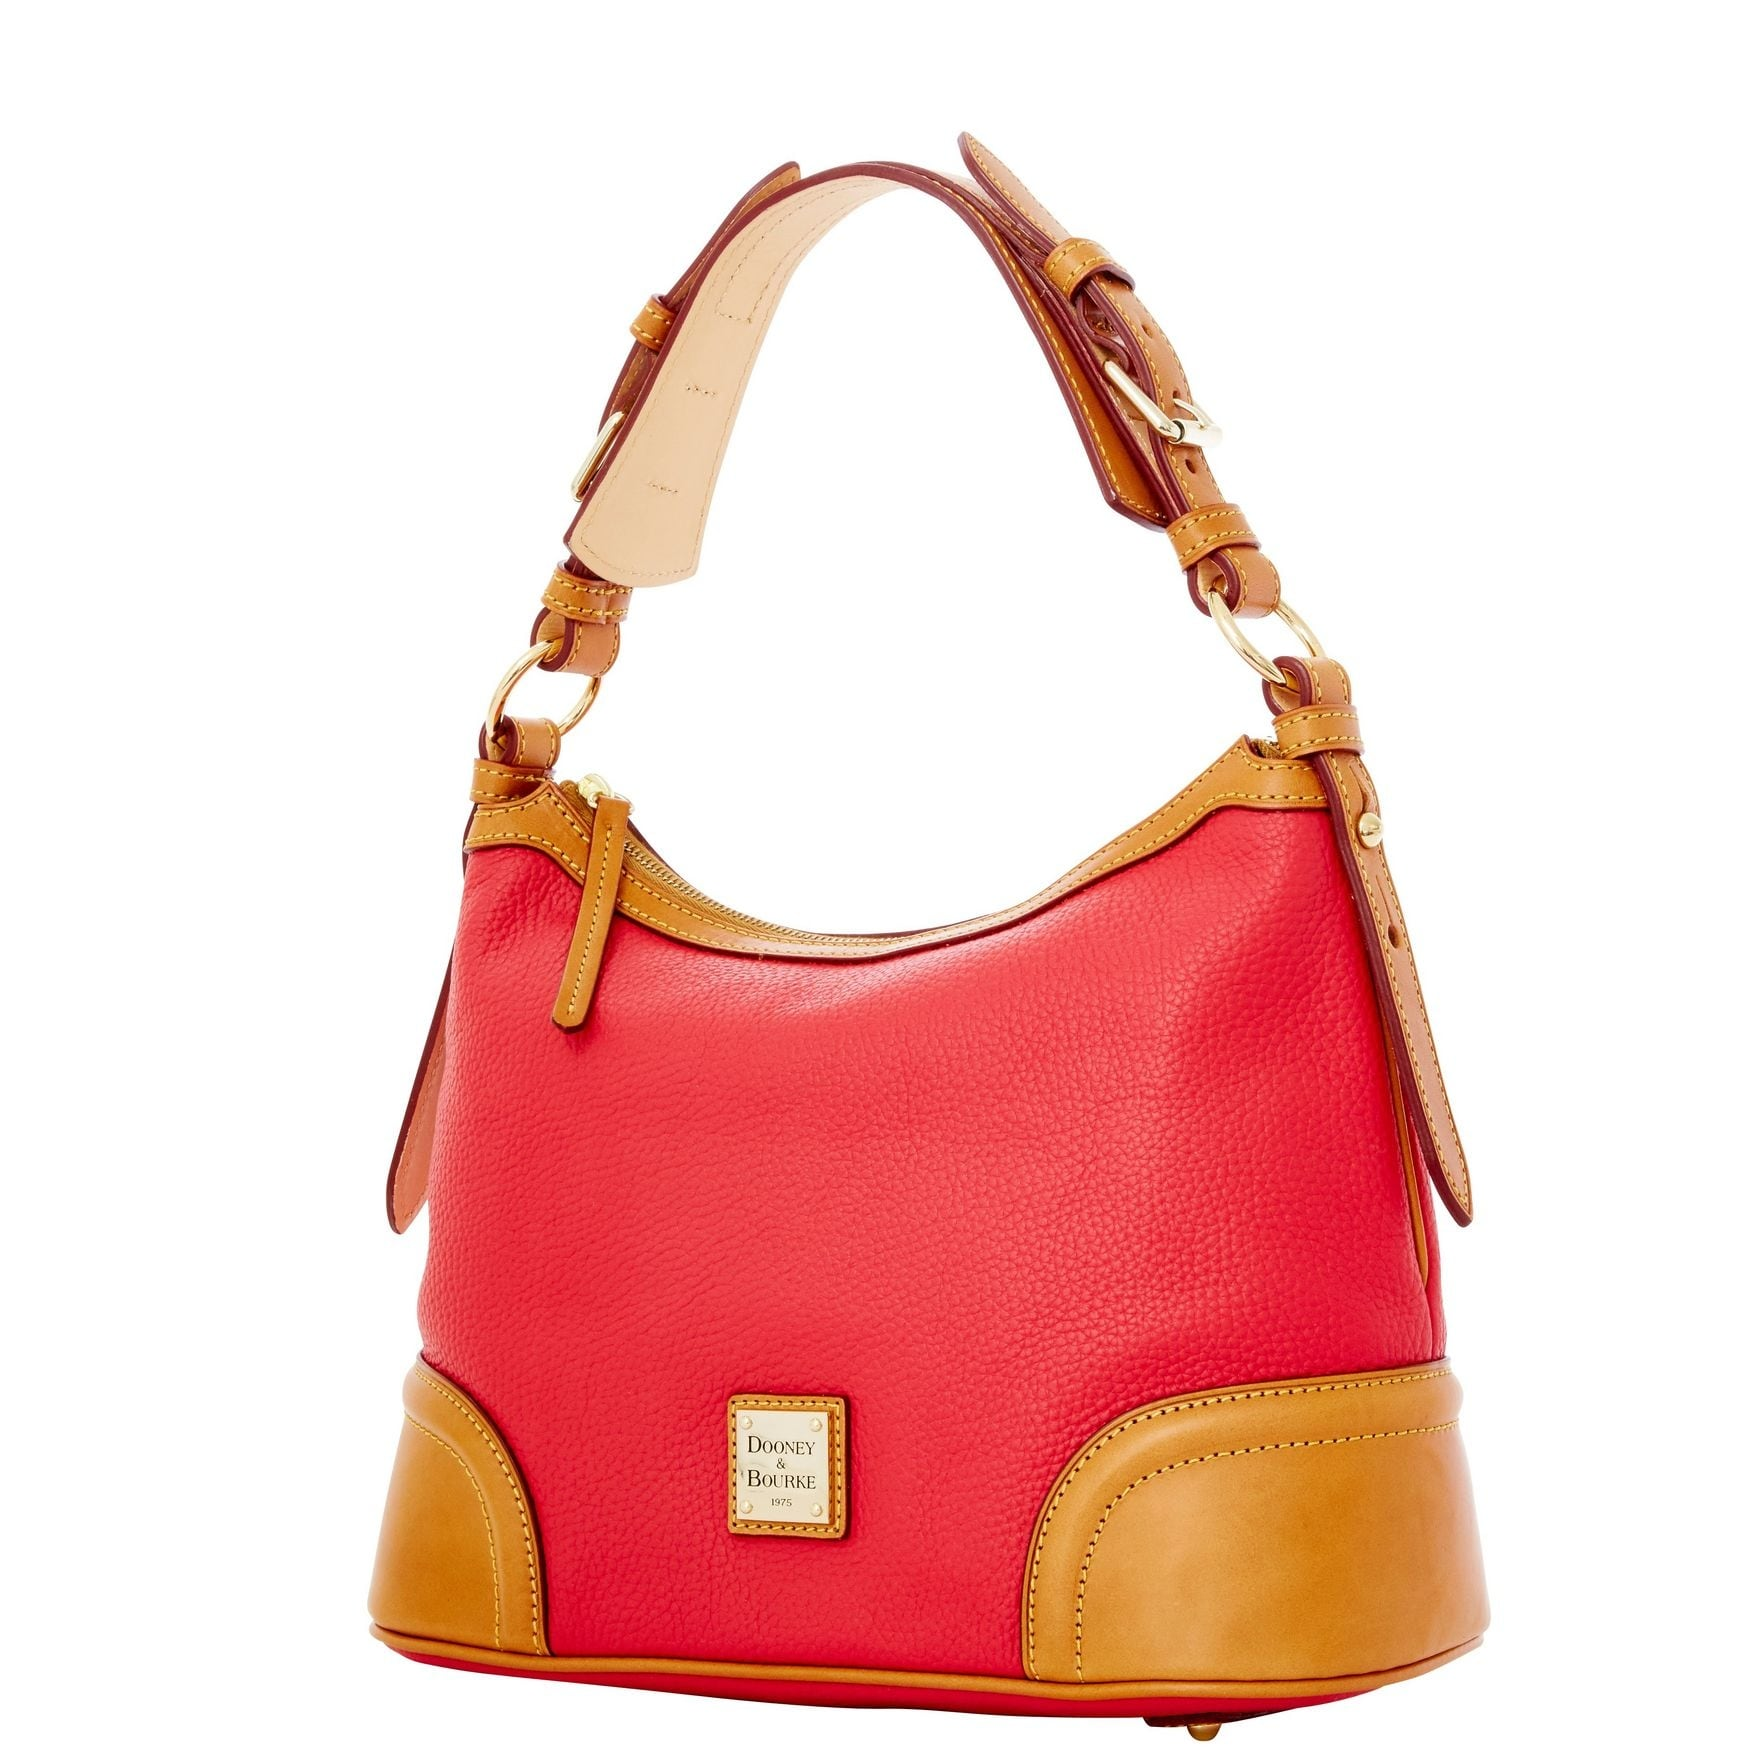 2a2ef61f0 Shop Dooney & Bourke Pebble Grain Hobo Shoulder Bag (Introduced by Dooney &  Bourke in Jun 2012) - Free Shipping Today - Overstock - 13318521